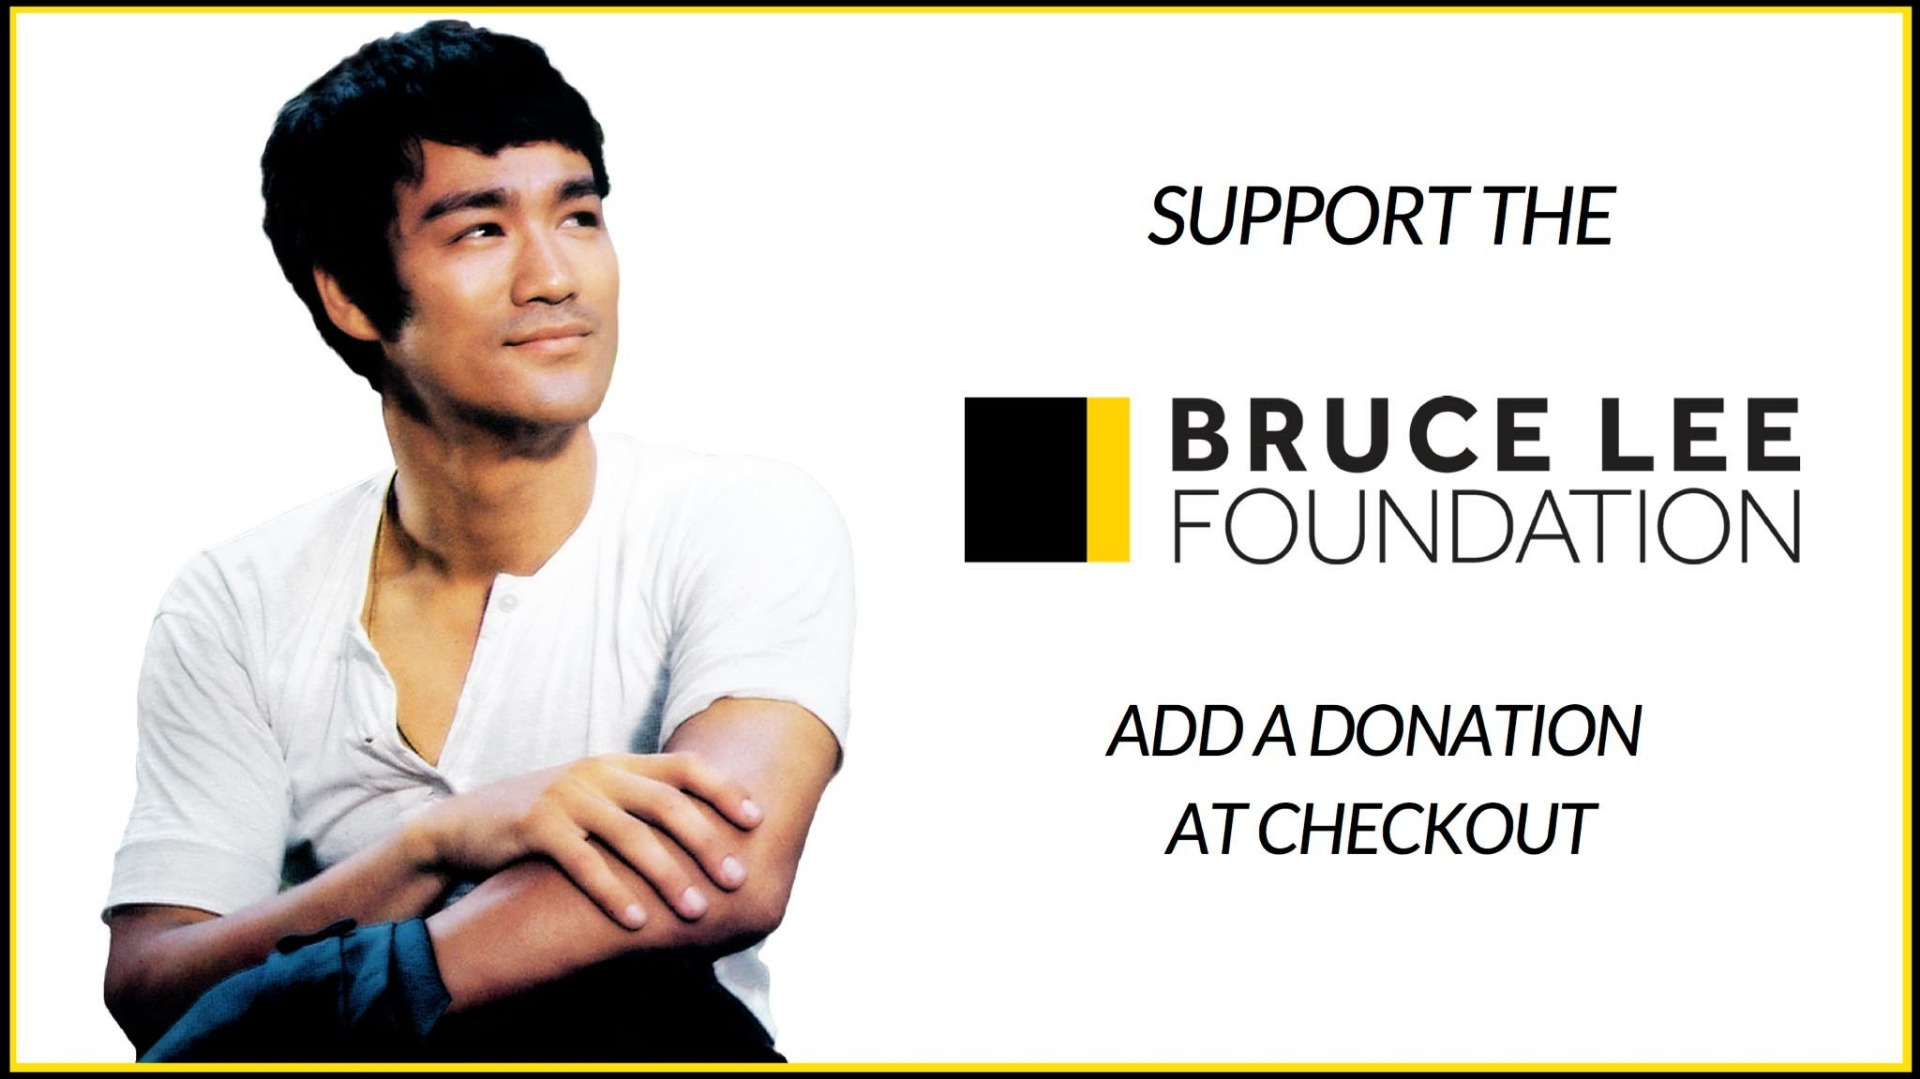 Bruce Lee Foundation Add A Donation At Checkout